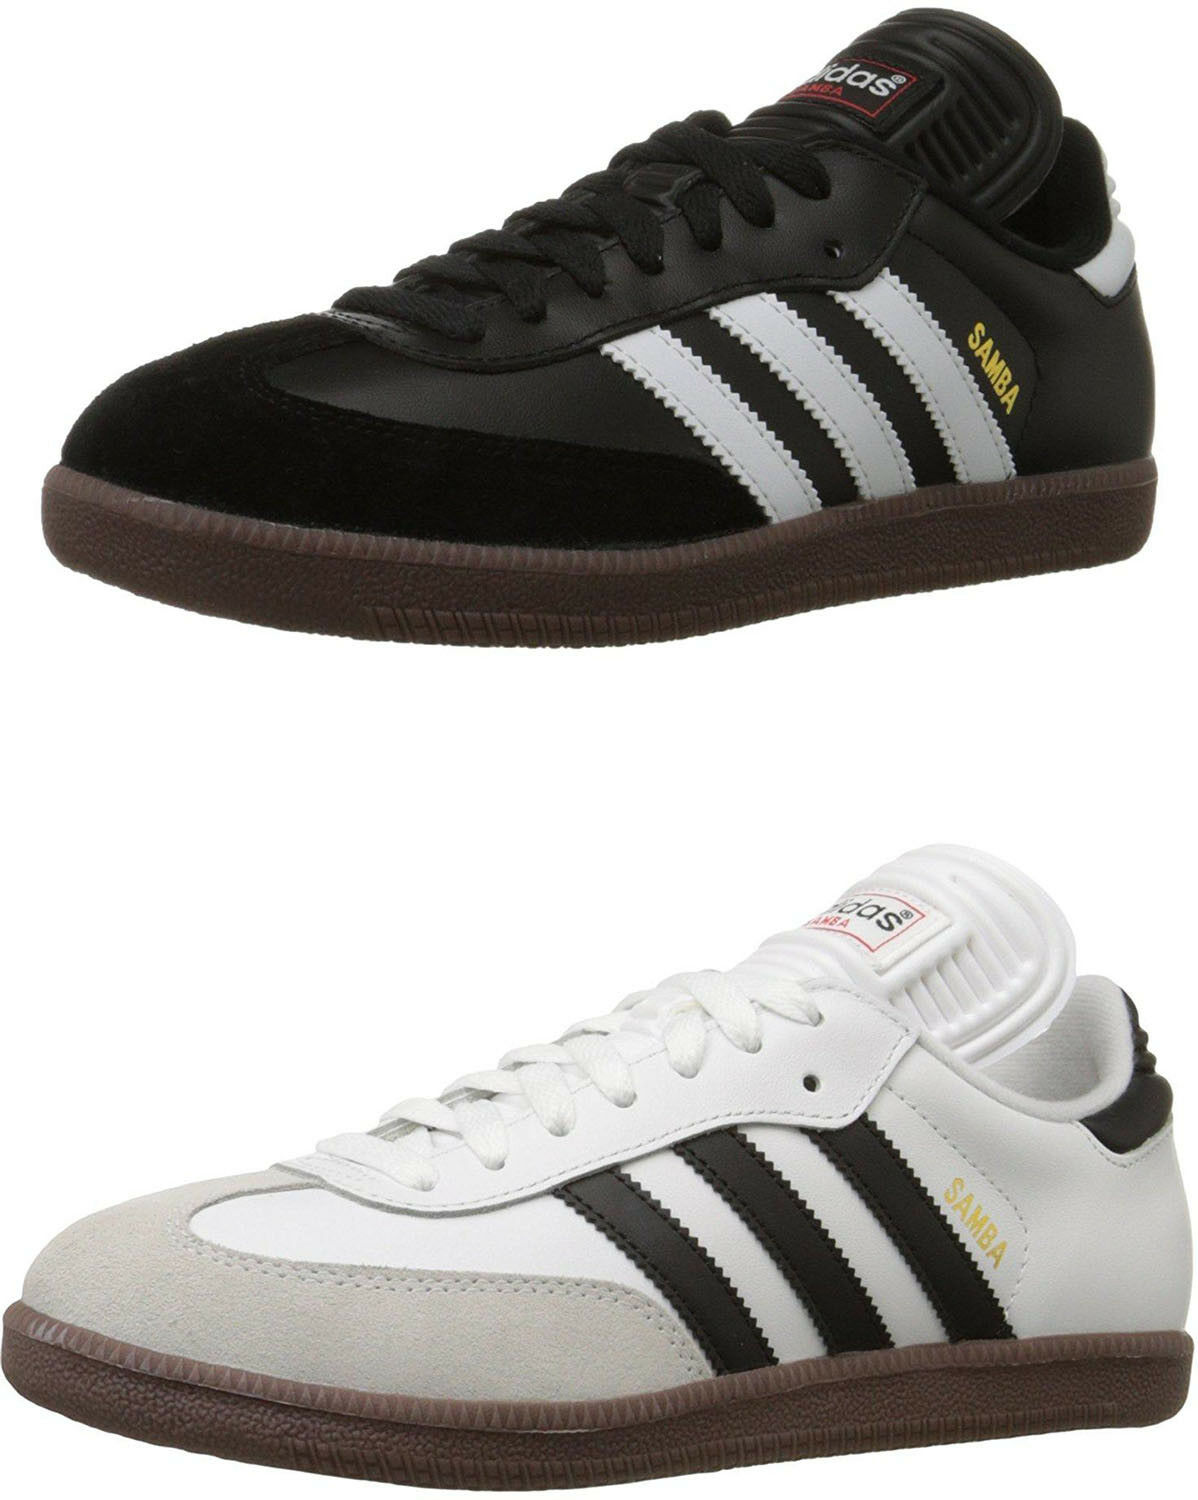 Adidas Performance Men's Samba Classic Indoor Soccer shoes, 2 colors